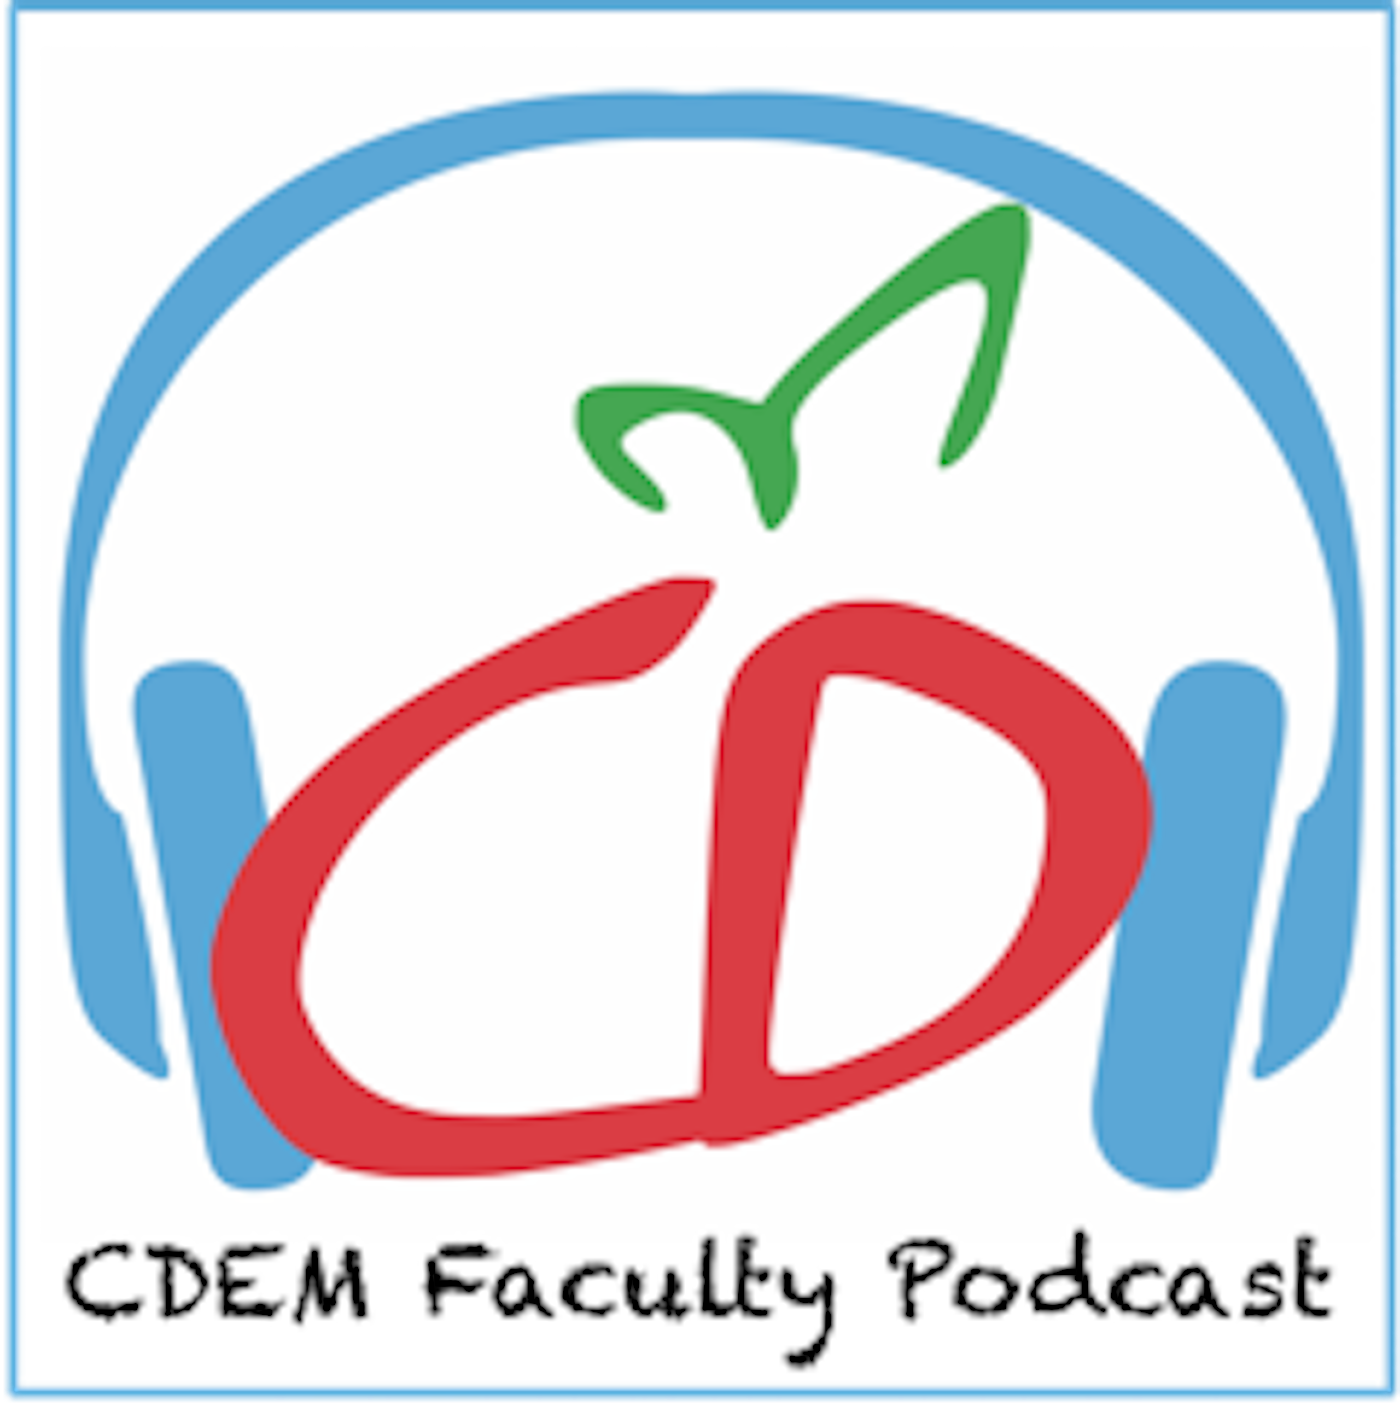 CDEM Faculty Podcast show image